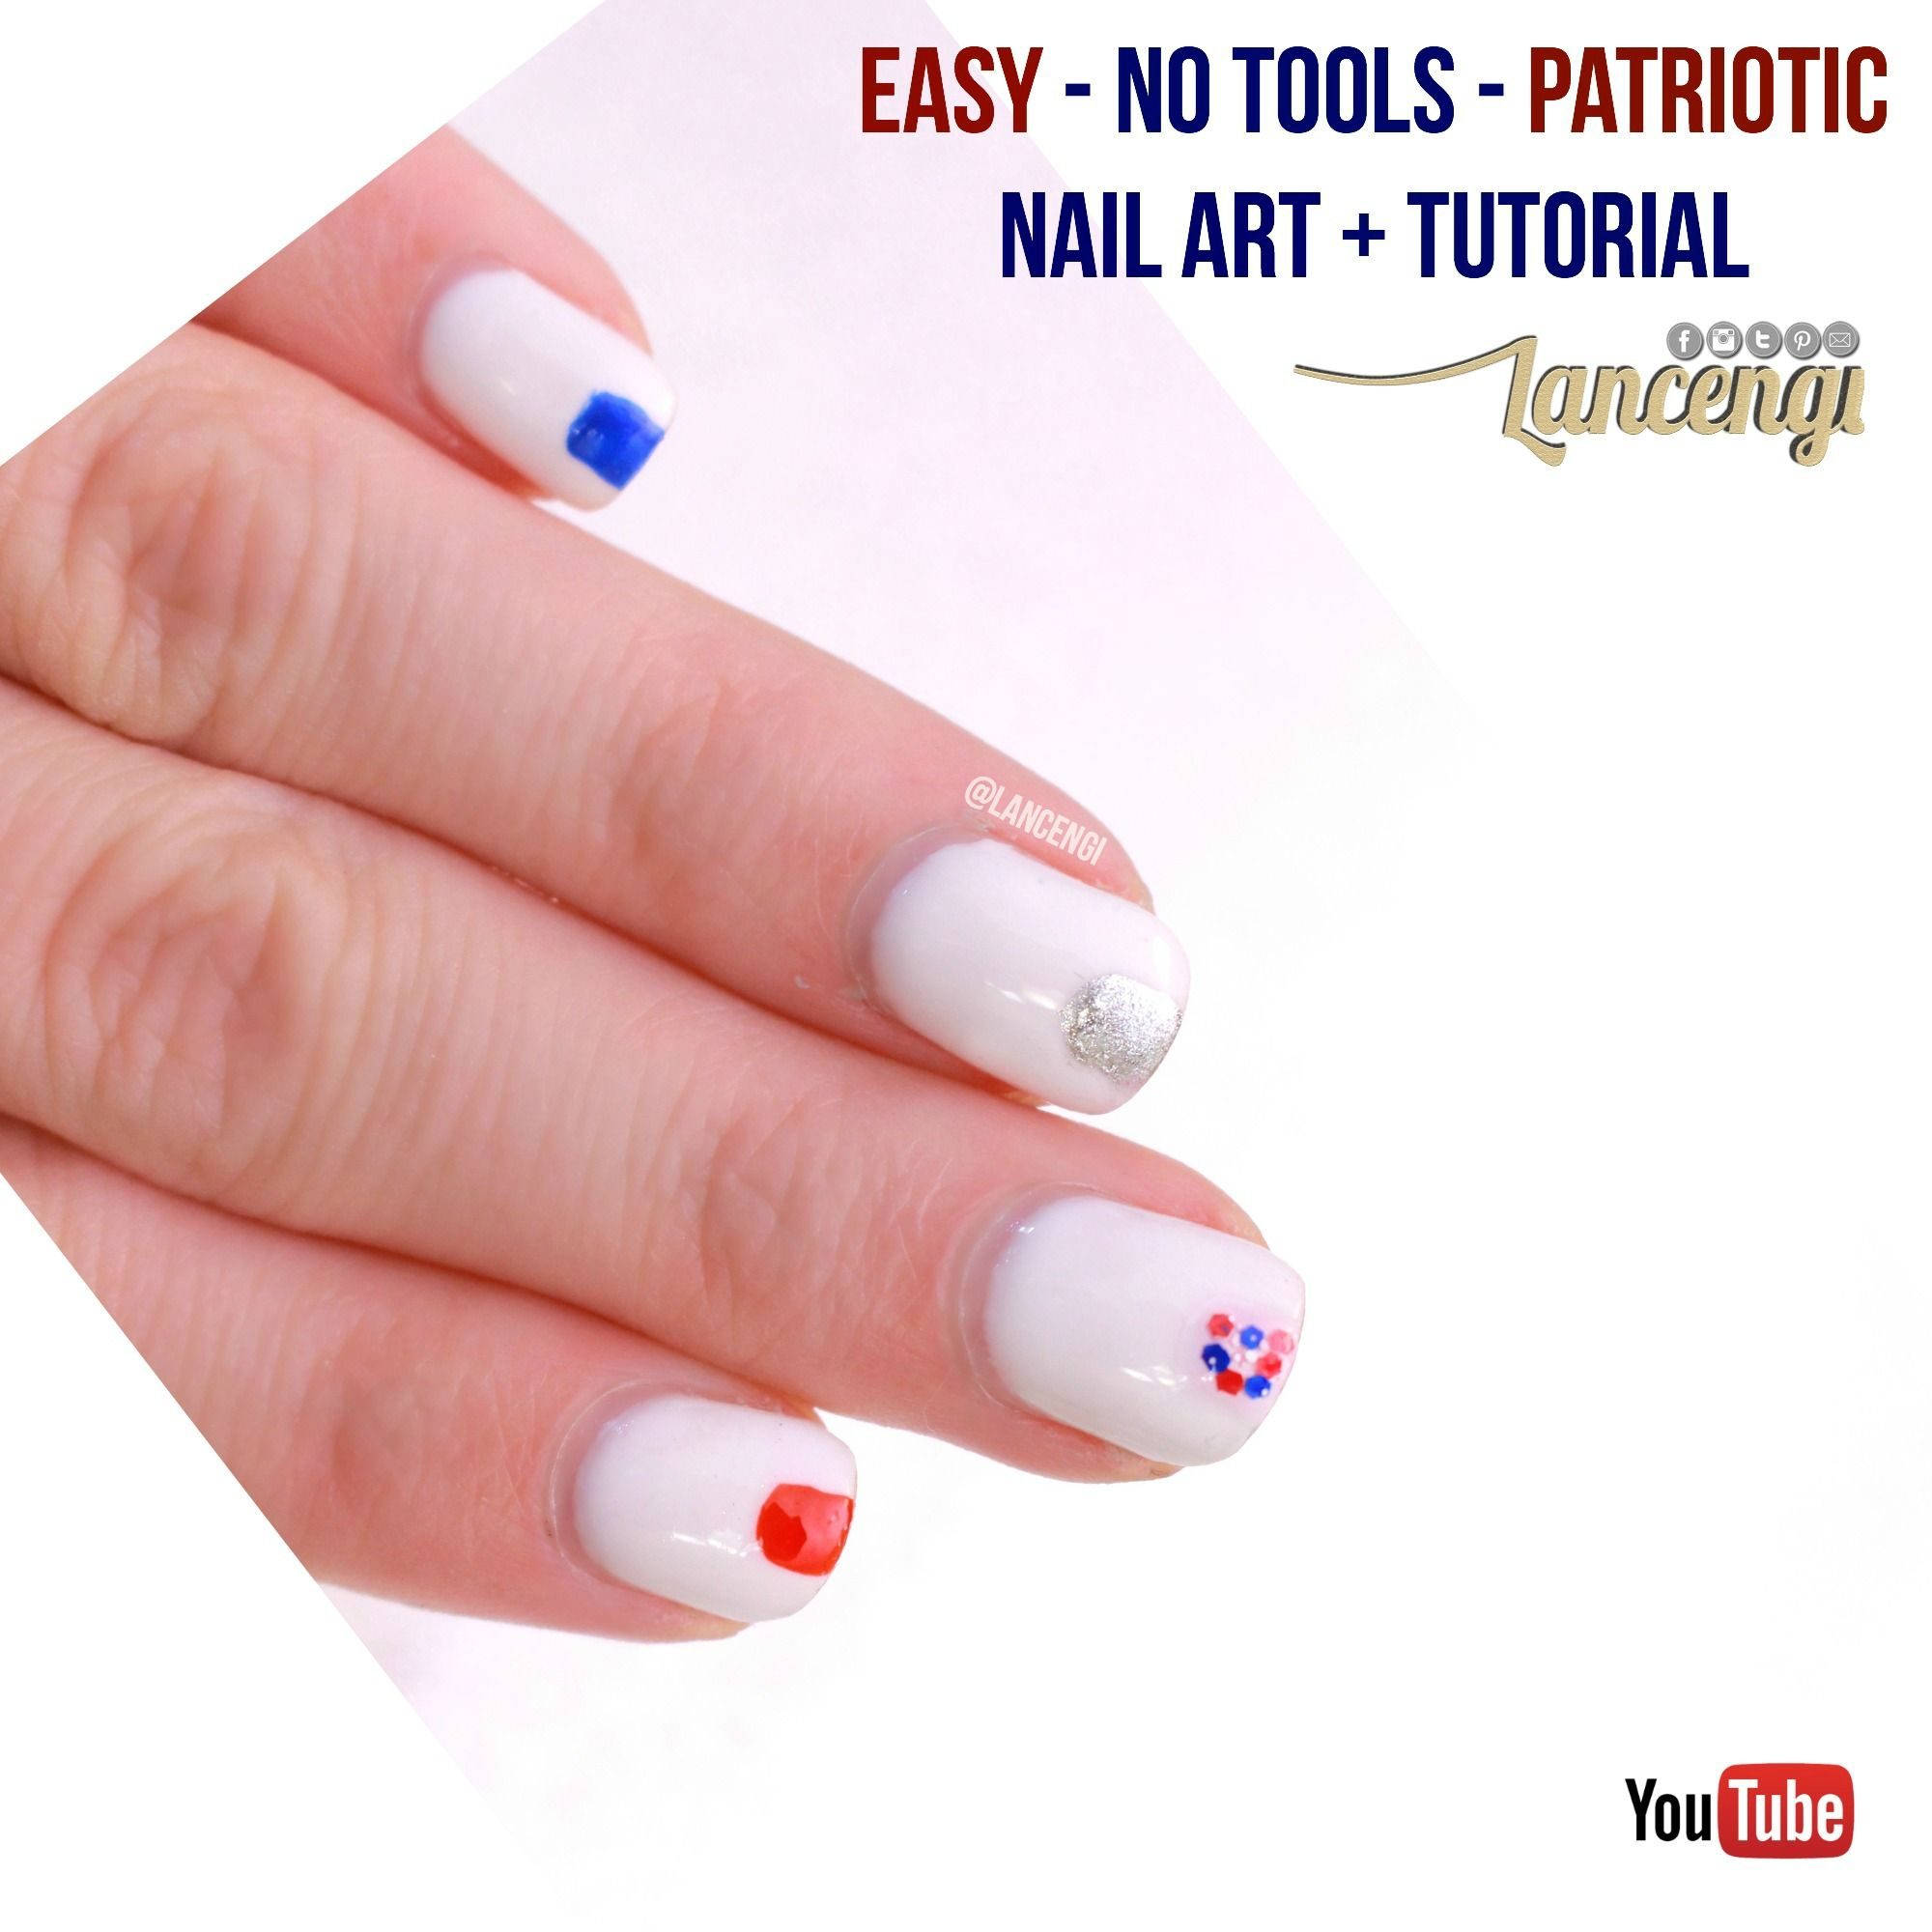 Easy Summer Nail Ideas: Fourth of July Red, White, Blue, and Silver ...